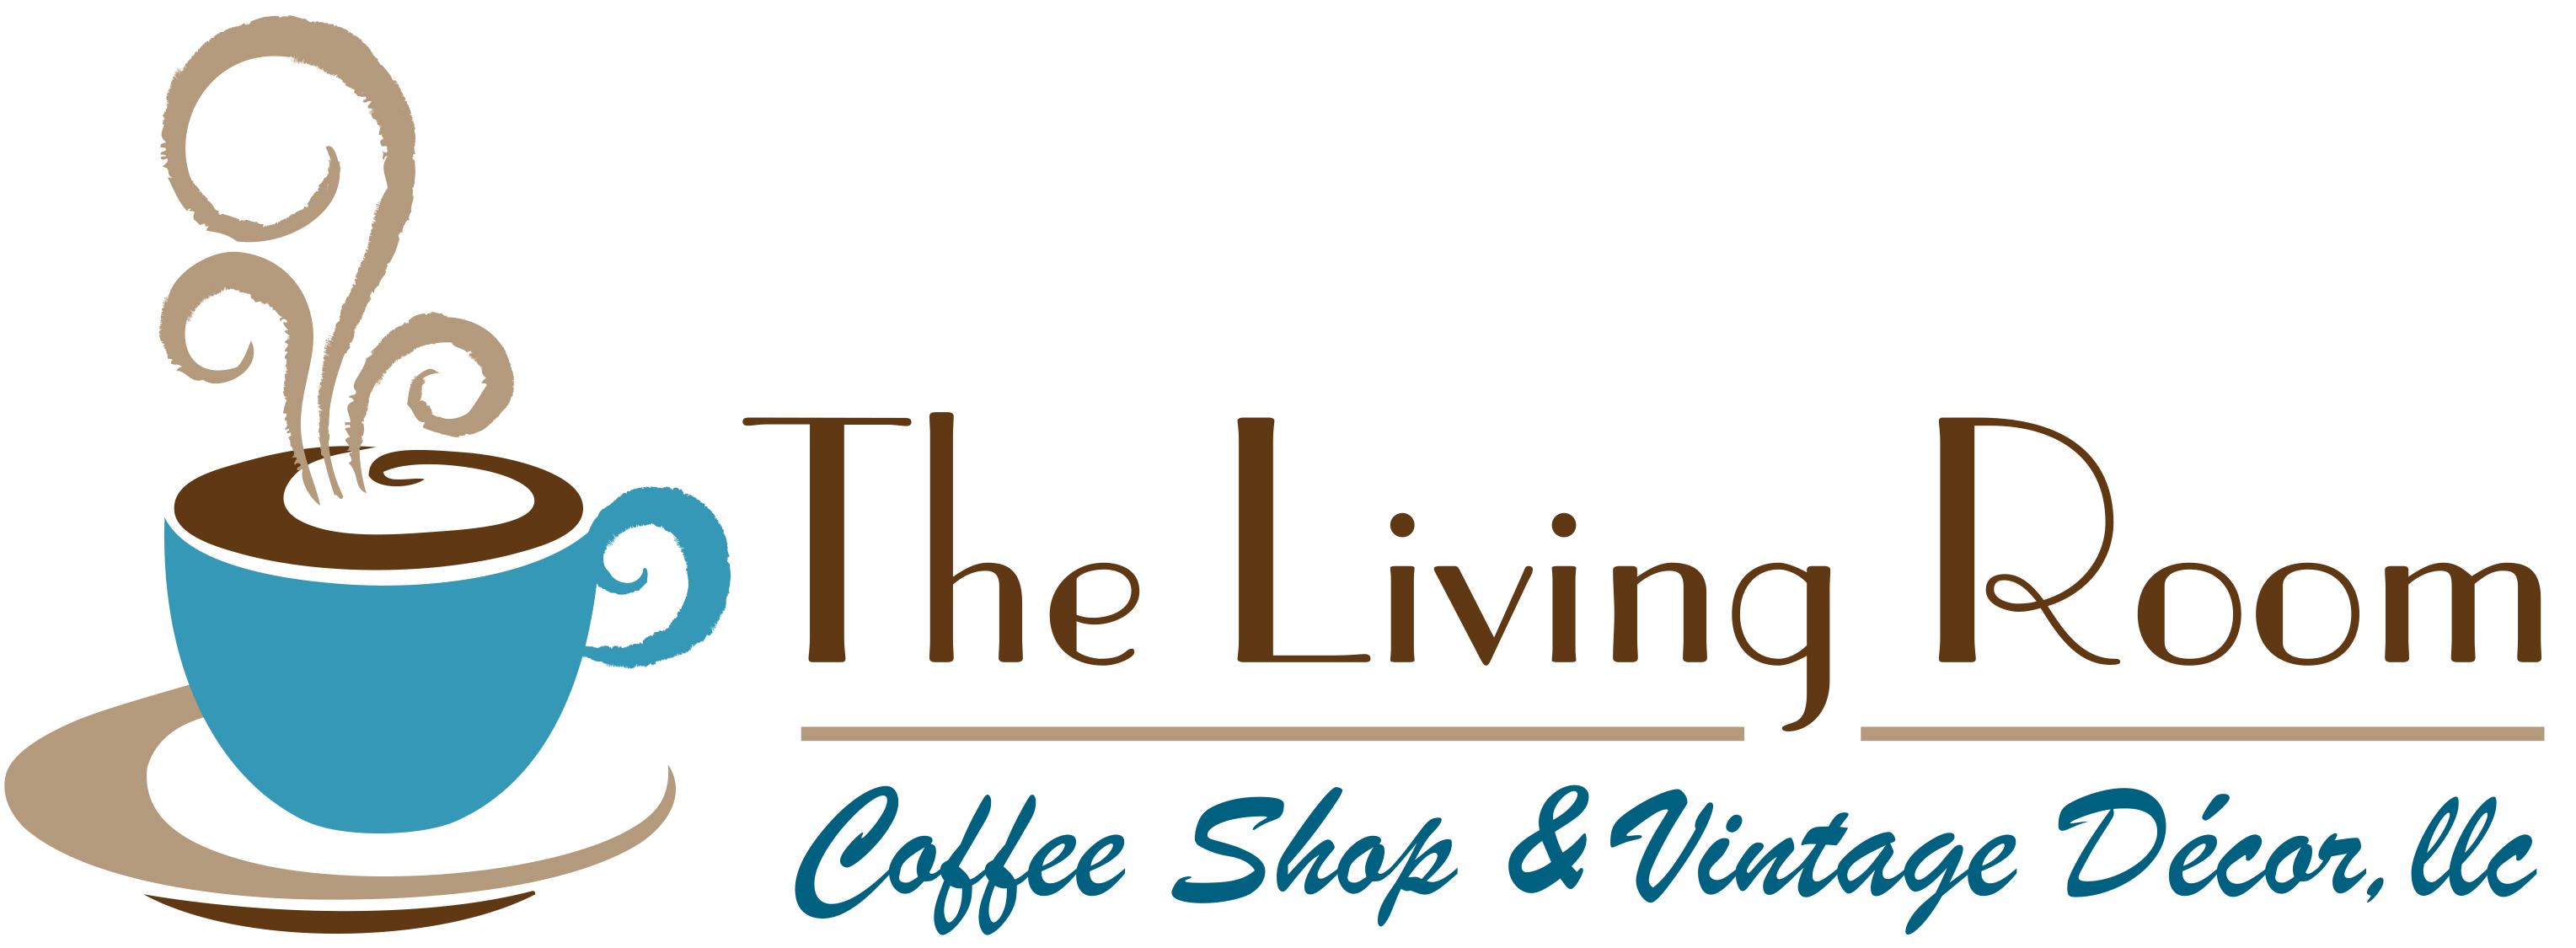 The Living Room Coffee Shop